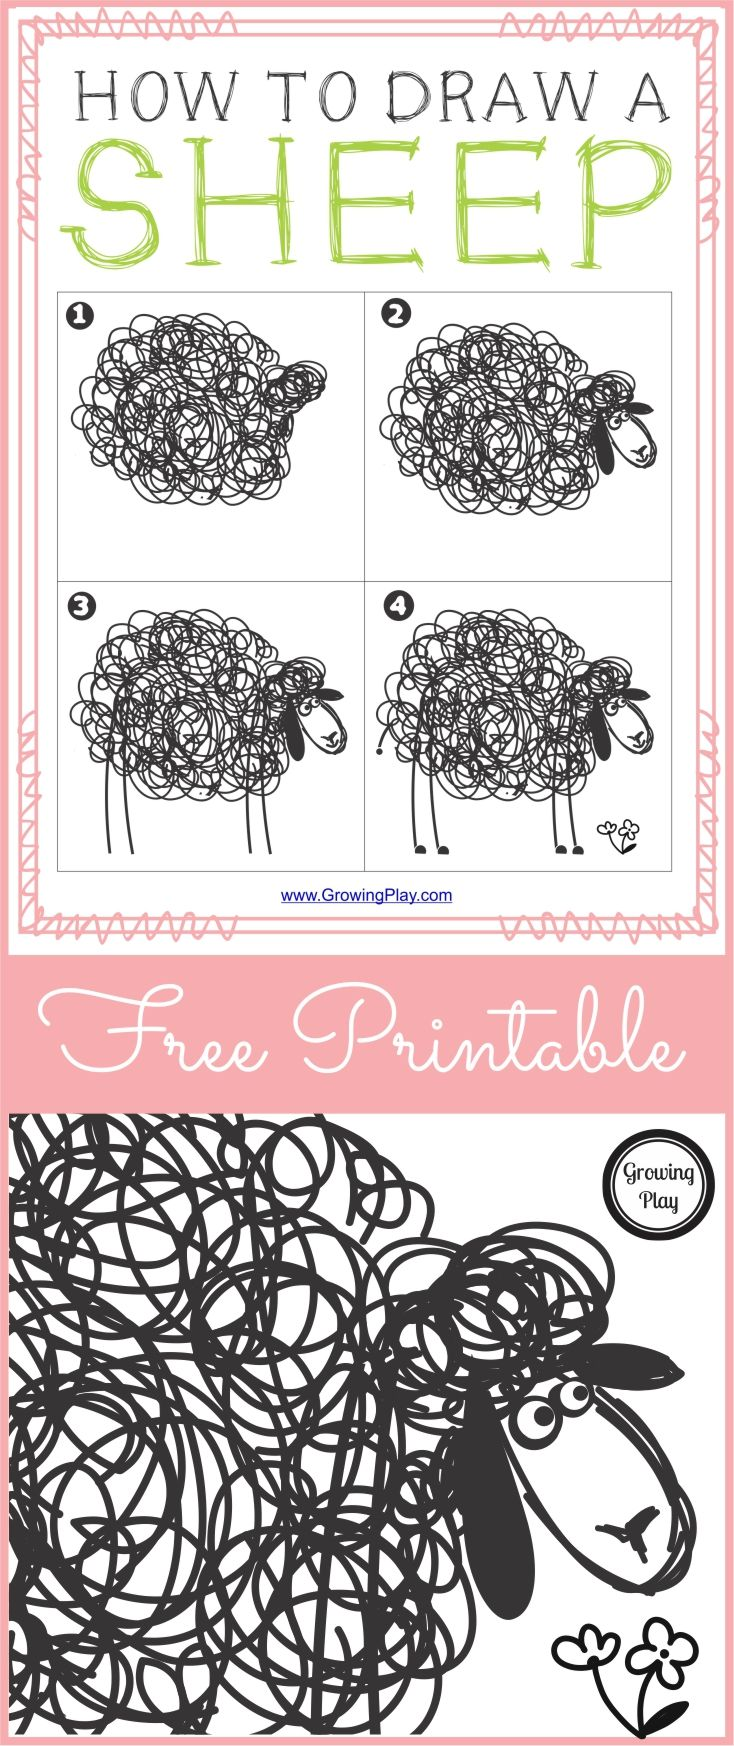 Here is a FREE printable on how to draw sheep (download at the bottom of the post).  I thought this sheep was adorable.  There are a few things you could do depending upon the age of the child.